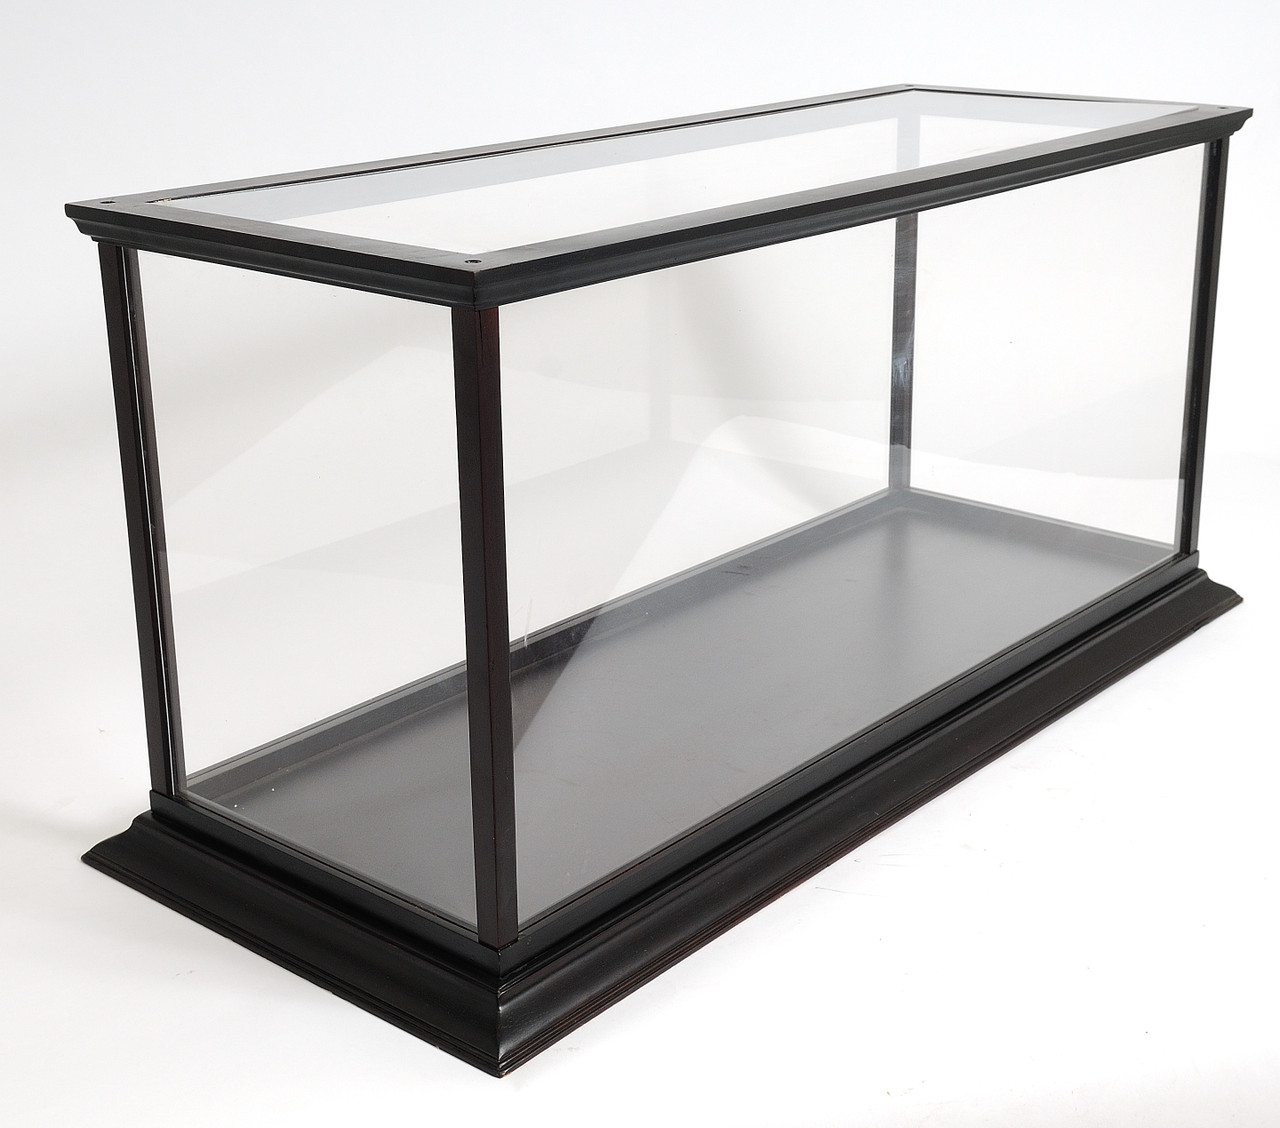 Display Case for Speed Boat (Model Sold Separately)